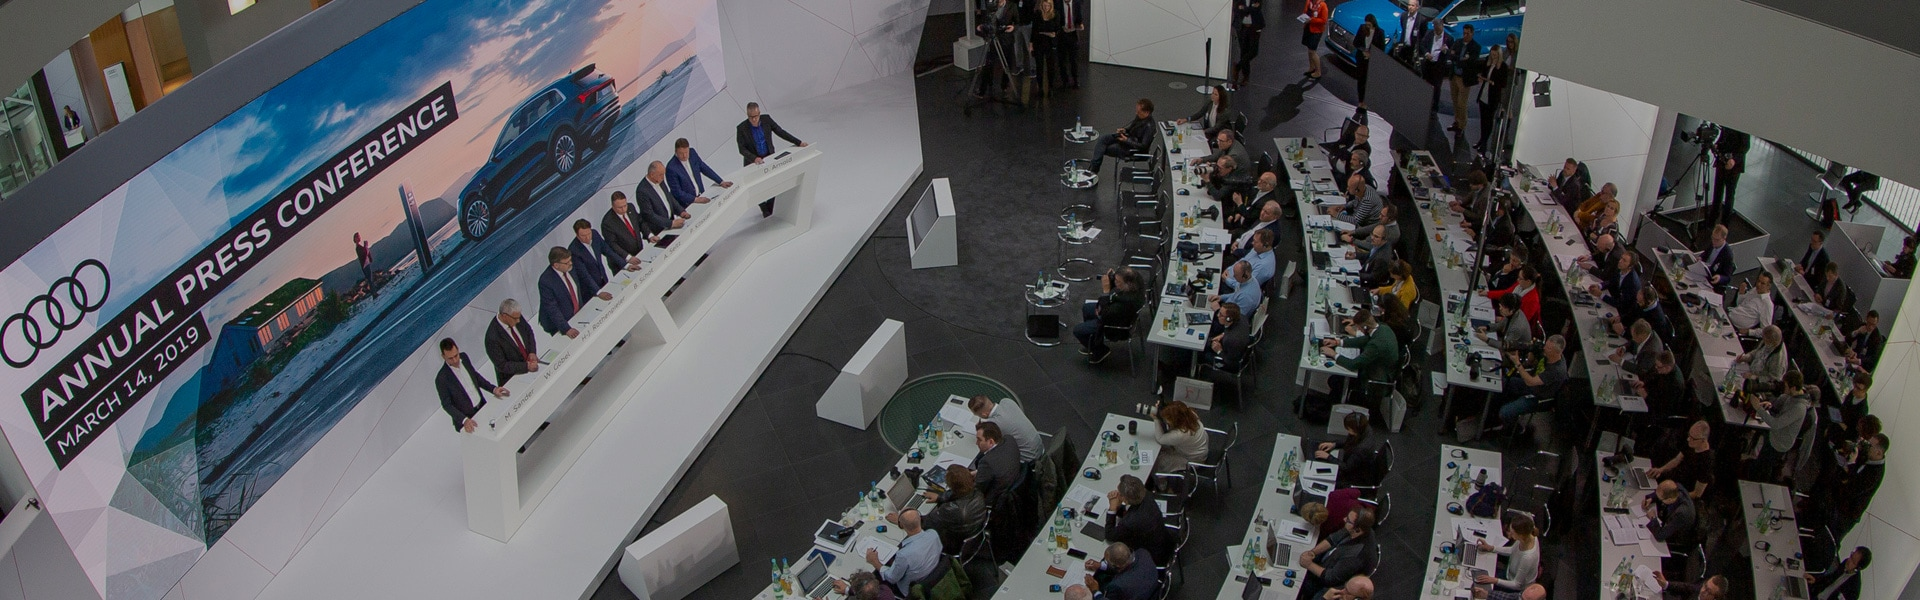 The Audi Annual Press Conference in Ingolstadt on March 14, 2019